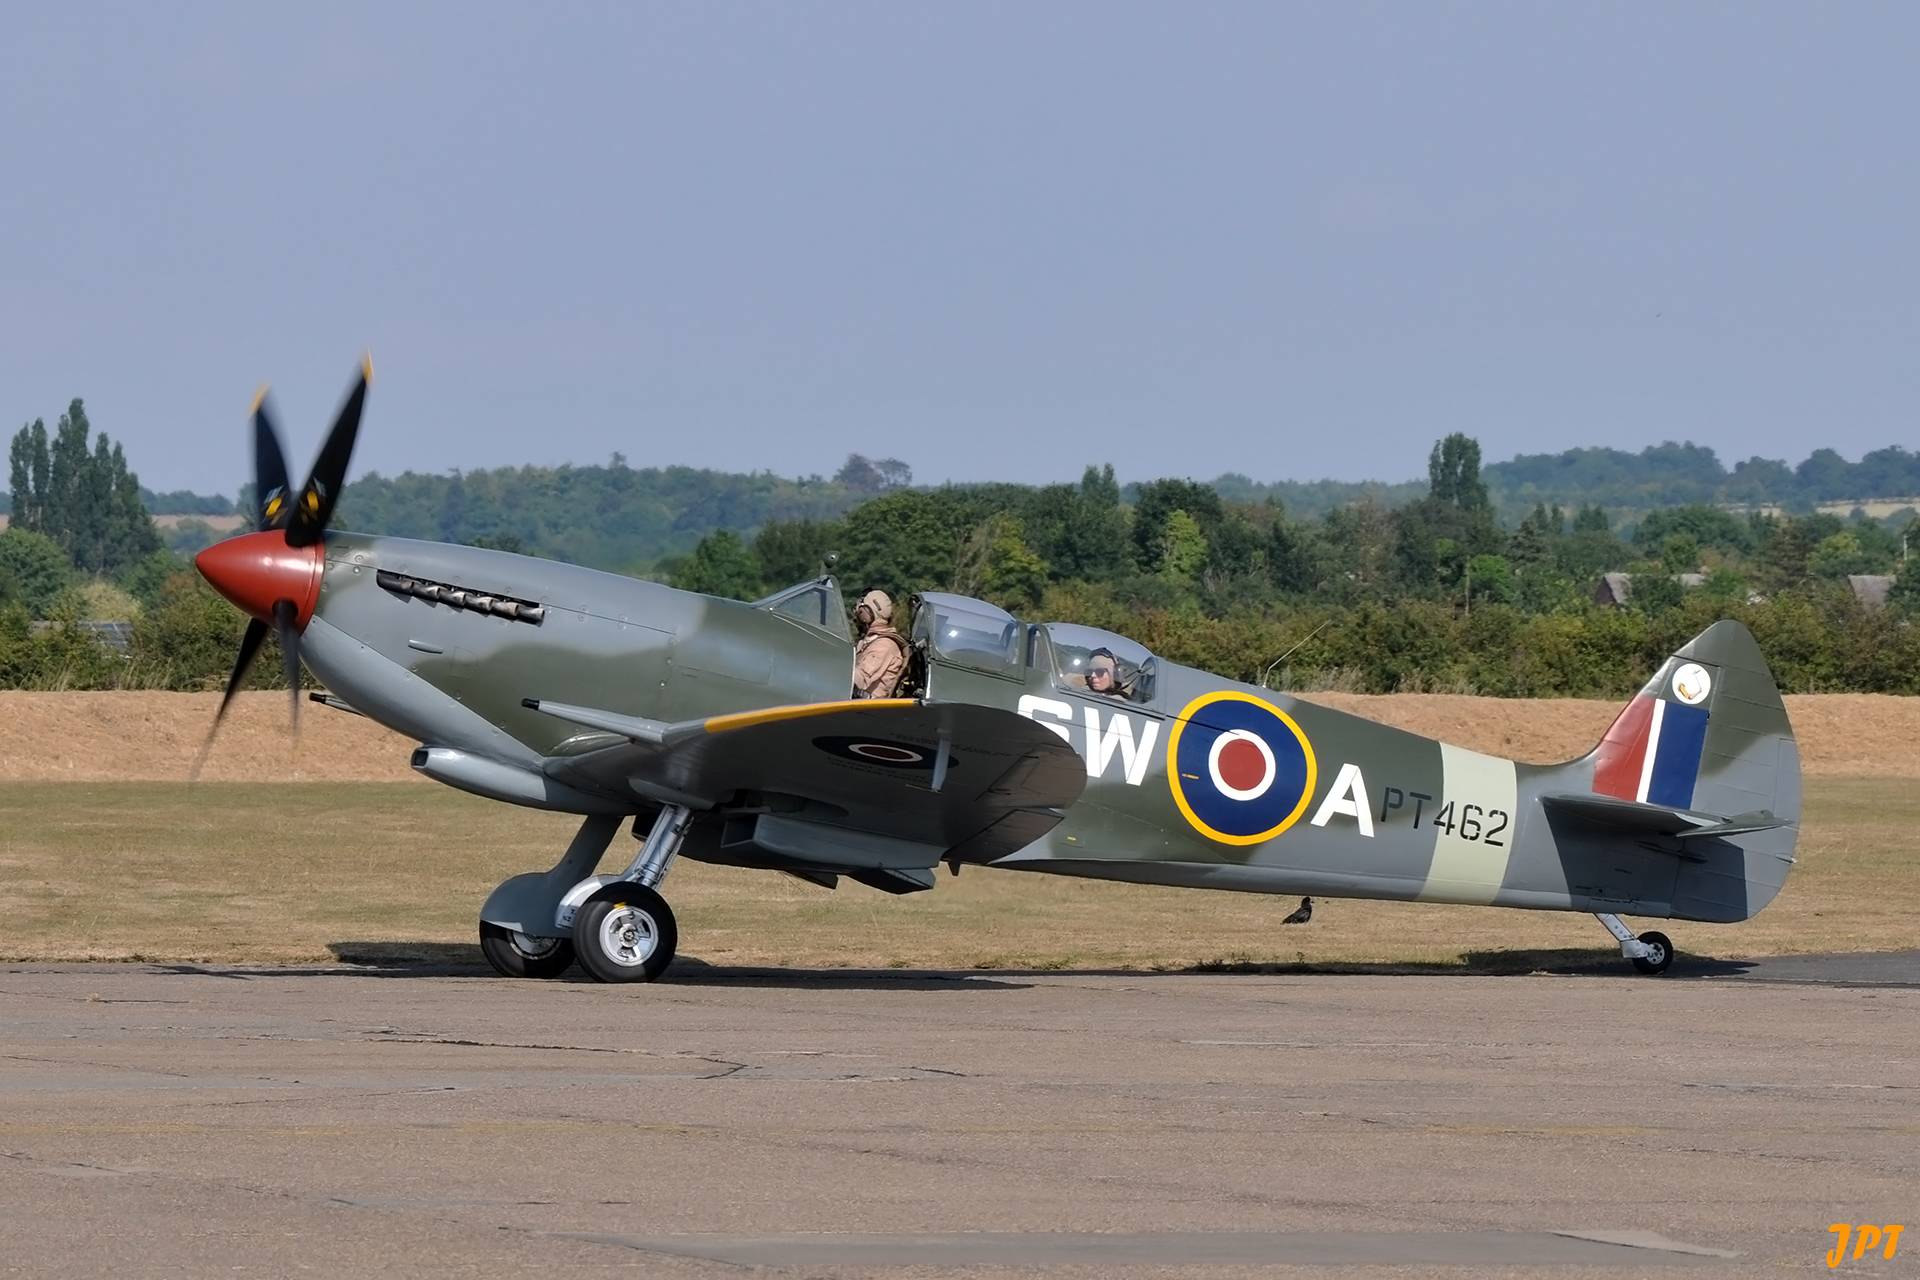 Spitfire TR Mk 9 PT462 at Flying Legends 2018 (Photo © Jean-Pierre Touzeau)